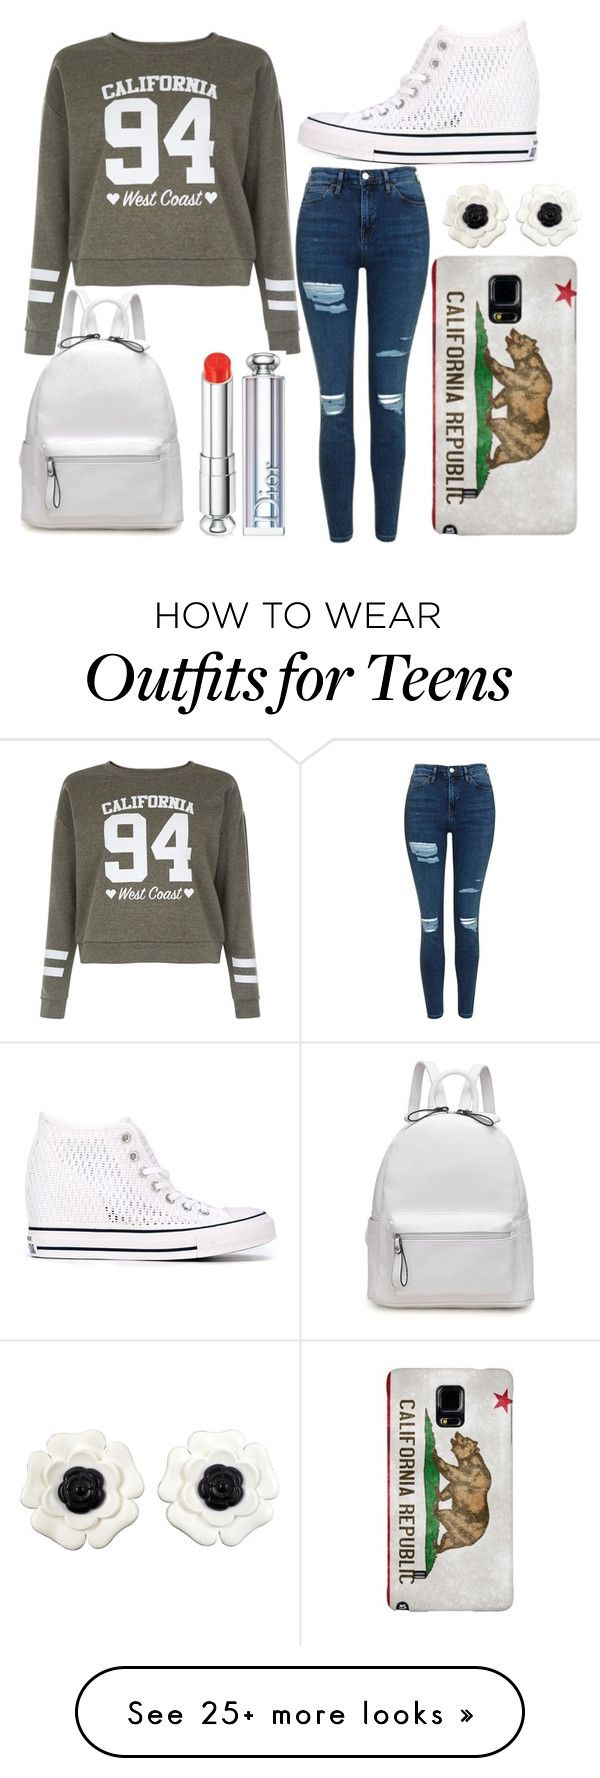 """Untitled #510"" by lakebaleonard on Polyvore featuring Topshop, New Look, Converse, Chanel and Christian Dior"